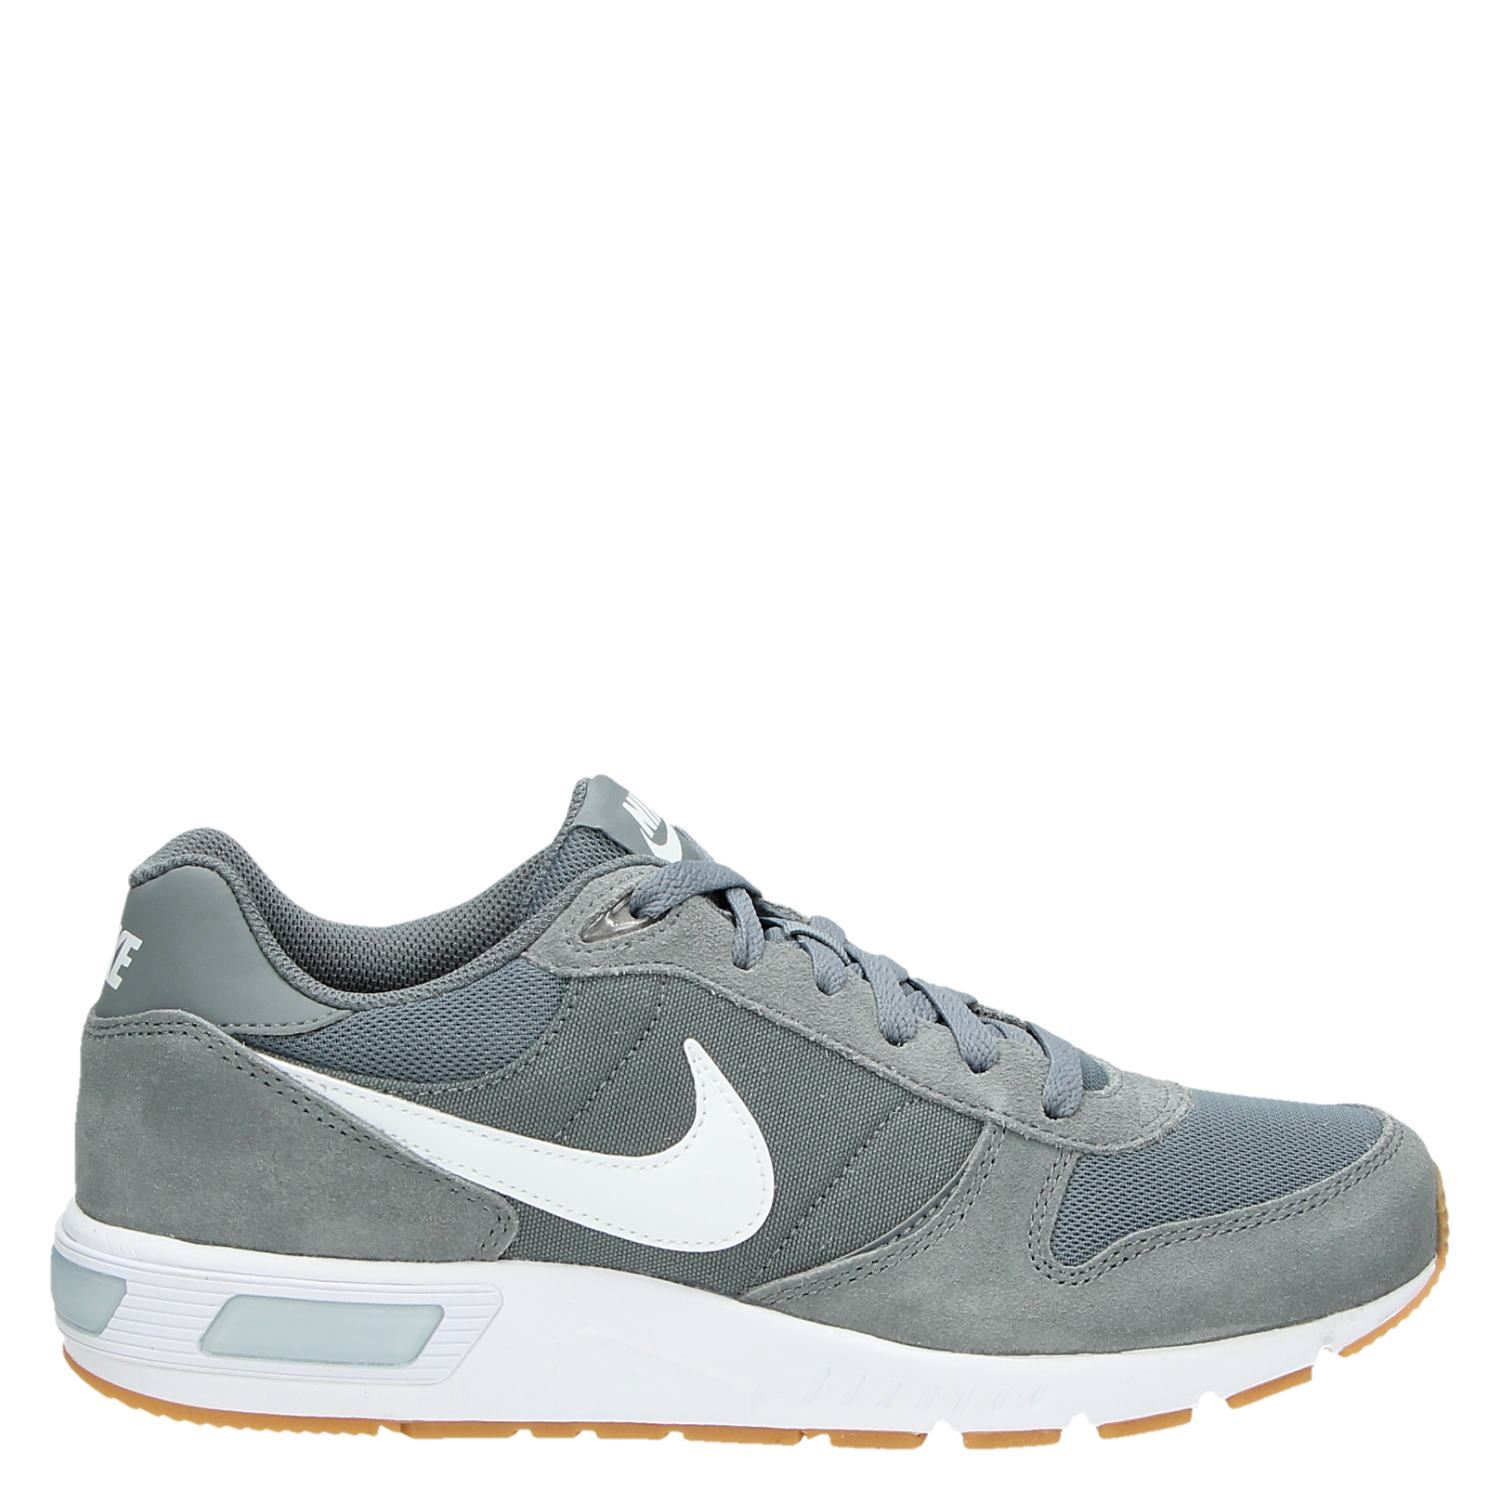 Gris Chaussures Nike Sb Collection Taille 37 Hommes ADB3T9MO